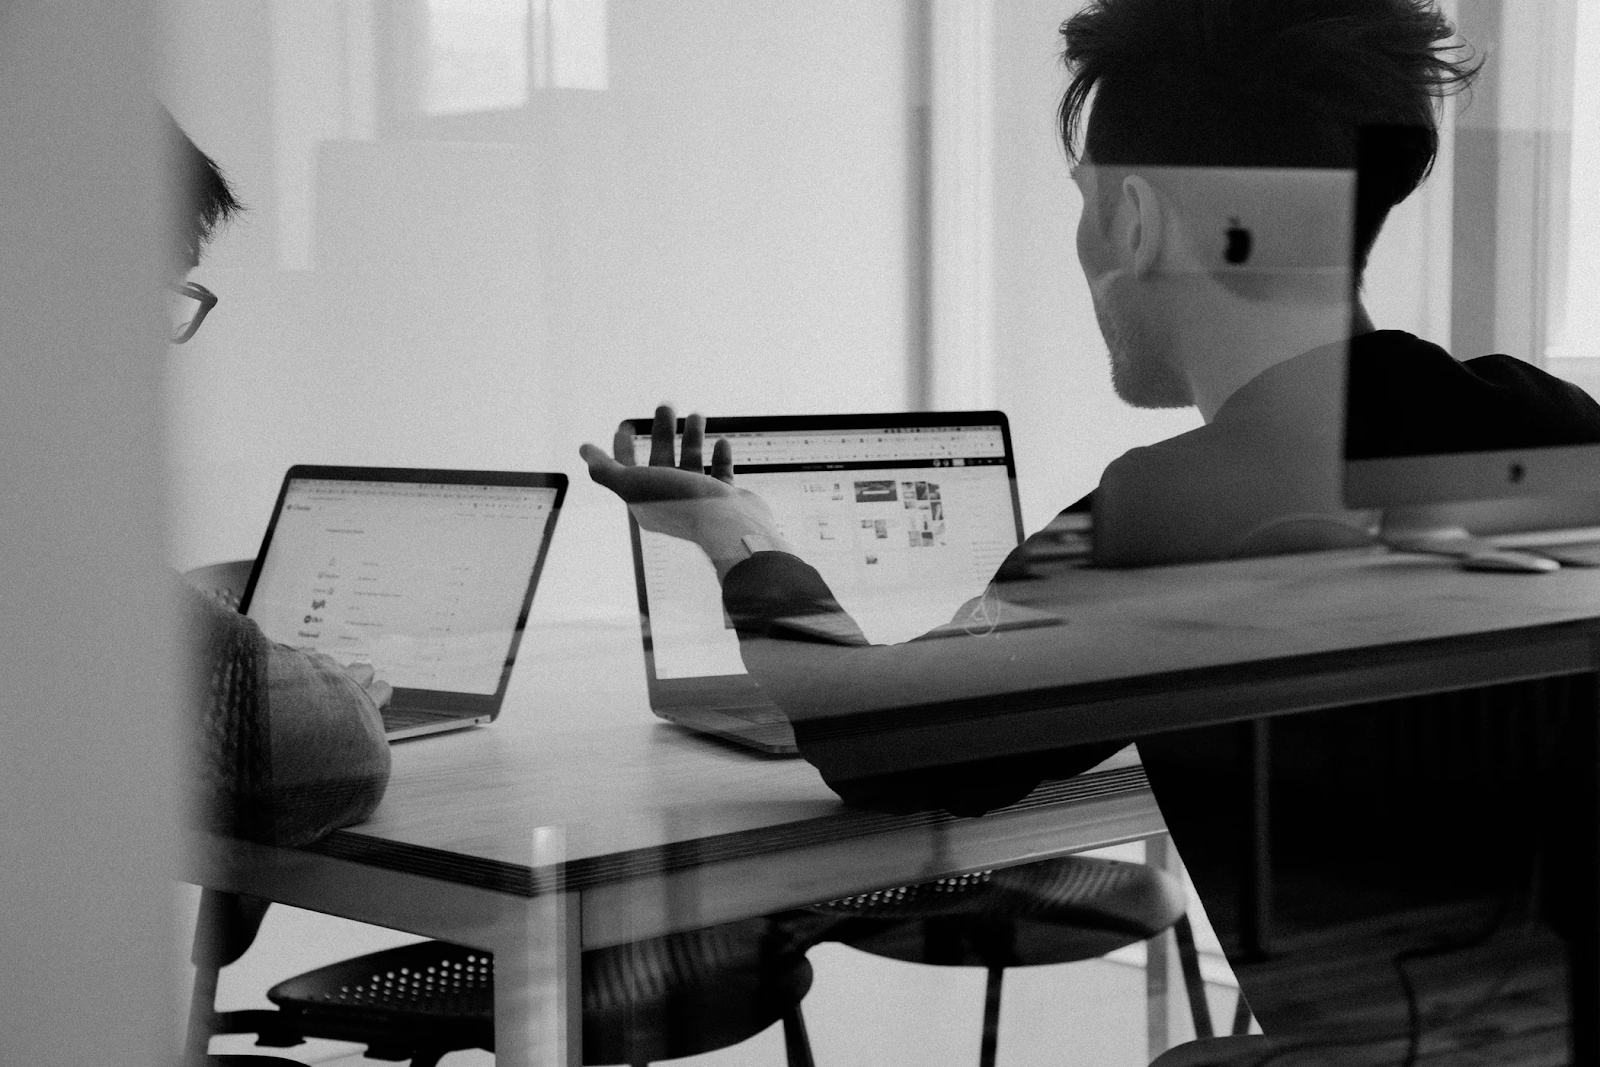 Two men using macbooks have a meeting to review and evaluate their designs.